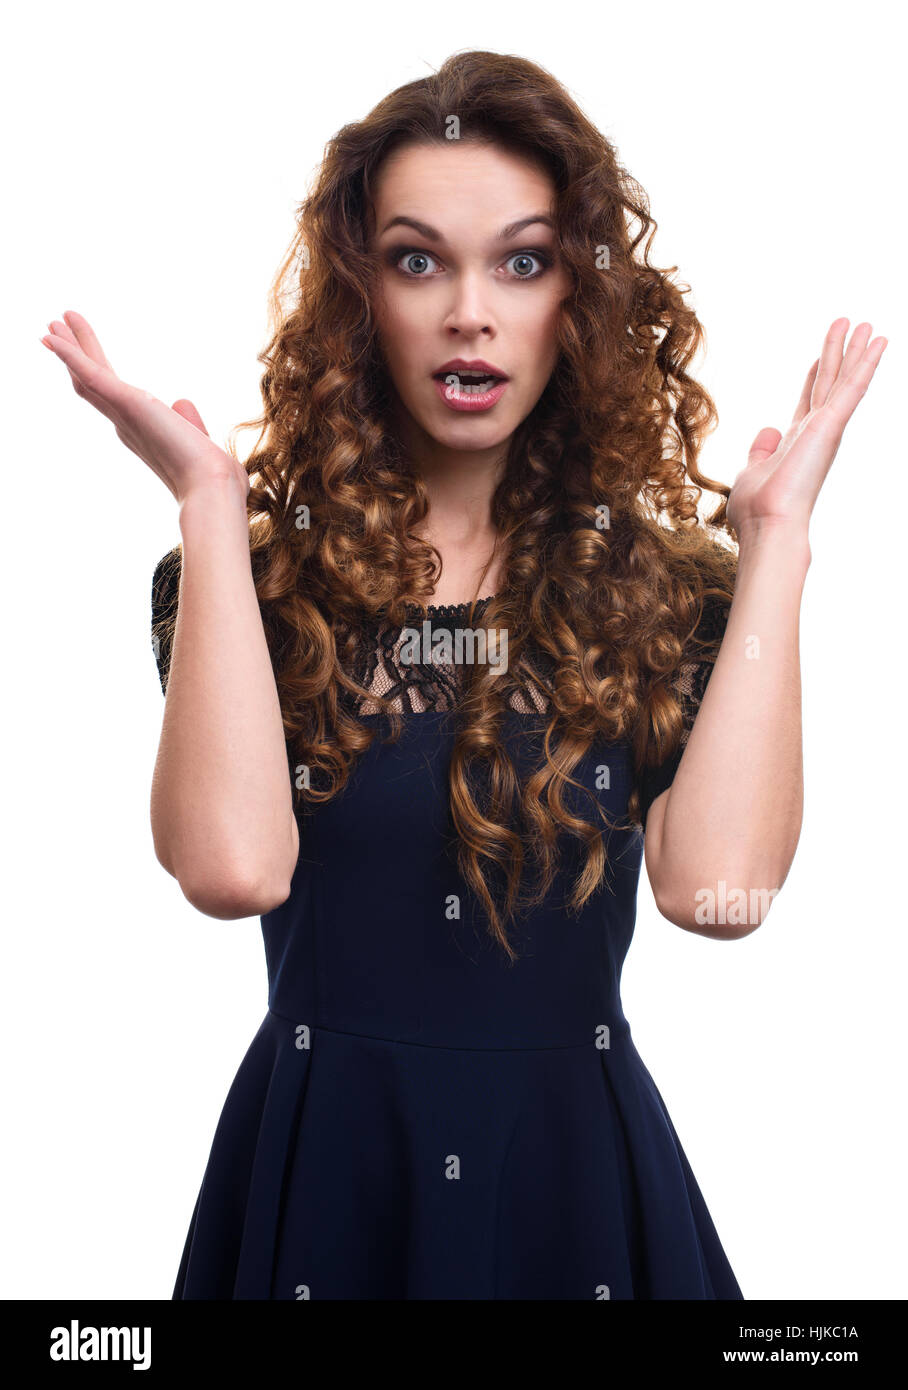 bbf64c313e7 Surprised happy beautiful woman with curly hair isolated on white background  - Stock Image